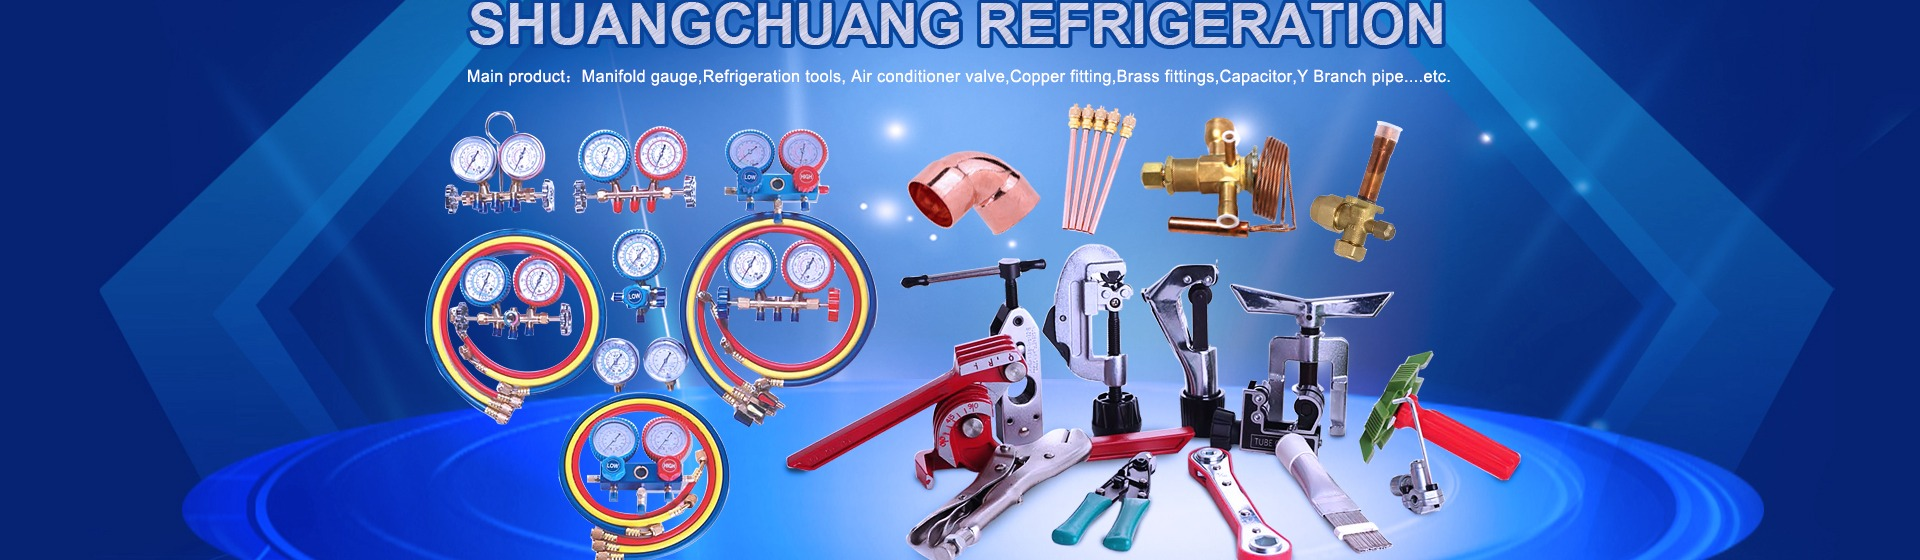 Yiwu Shuangchuang Refrigeration Equipment Co Ltd Air Electrical Engineering In And Conditioning Conditioner Parts Copper Fittings